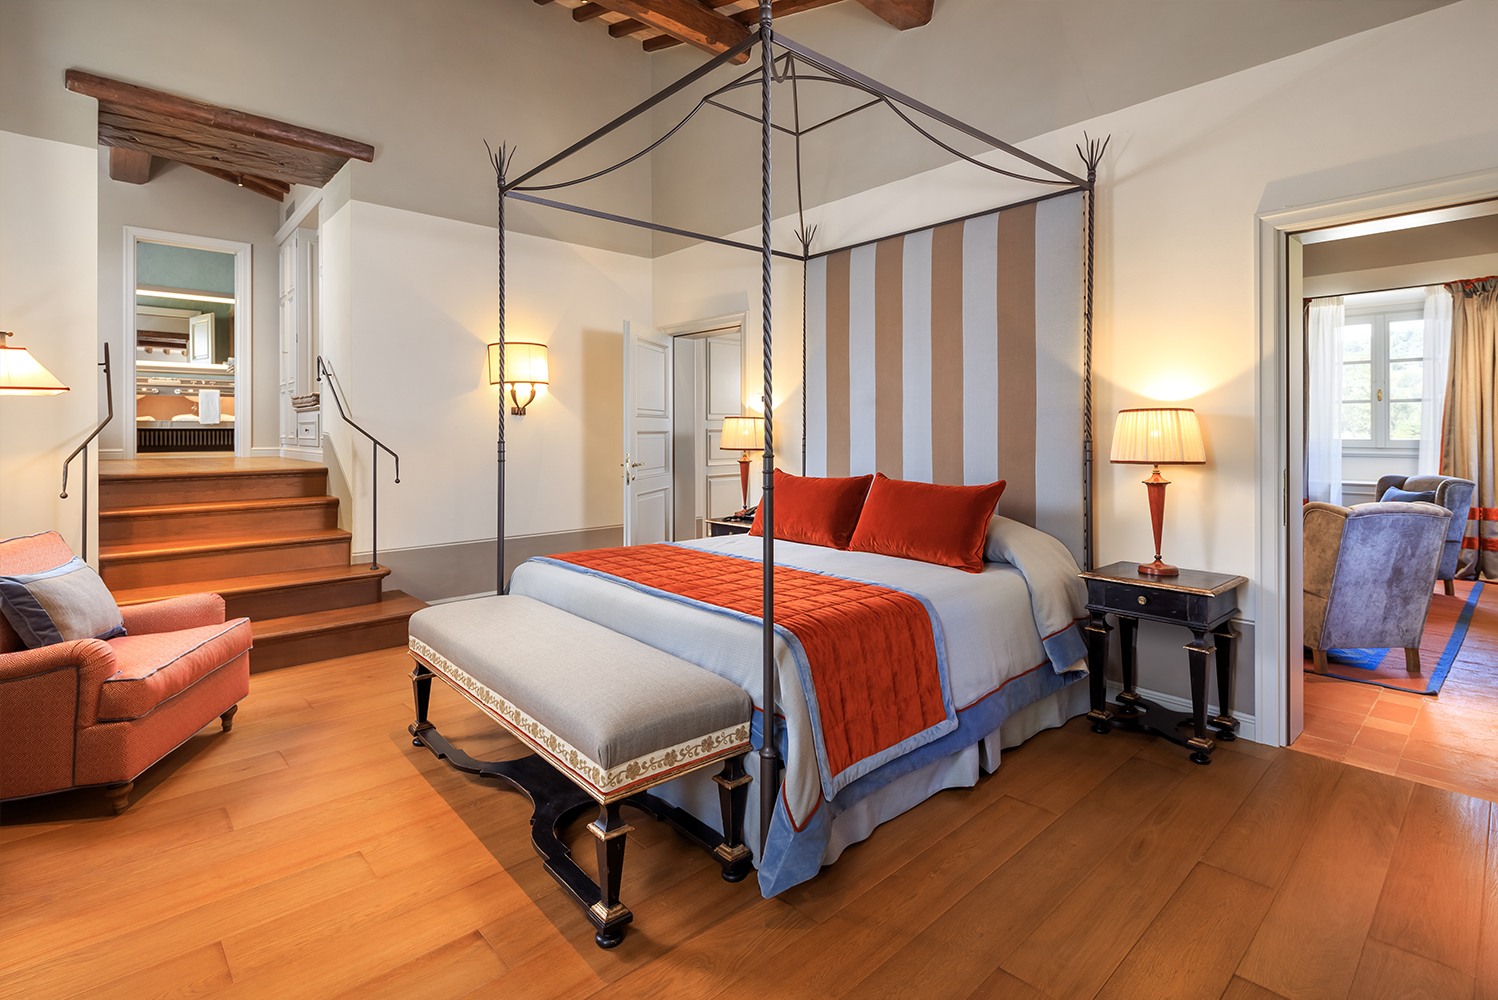 Casa Colonica has four new suites (including a Junior Suite), each with private bathrooms.